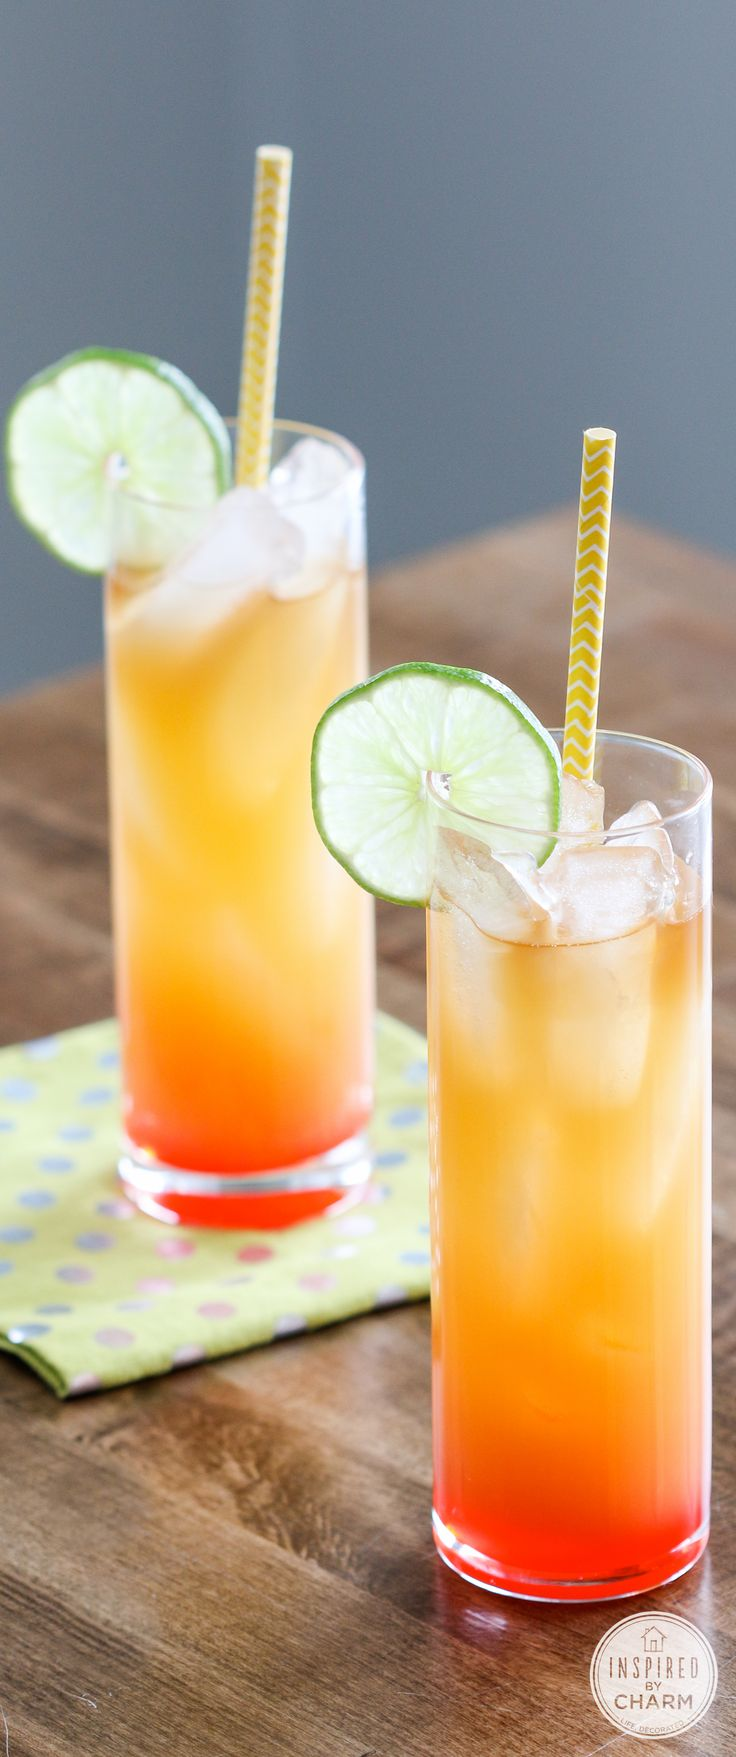 Rum Punch. The perfect cocktail to transport me to the beach ... mentally at least. ;)